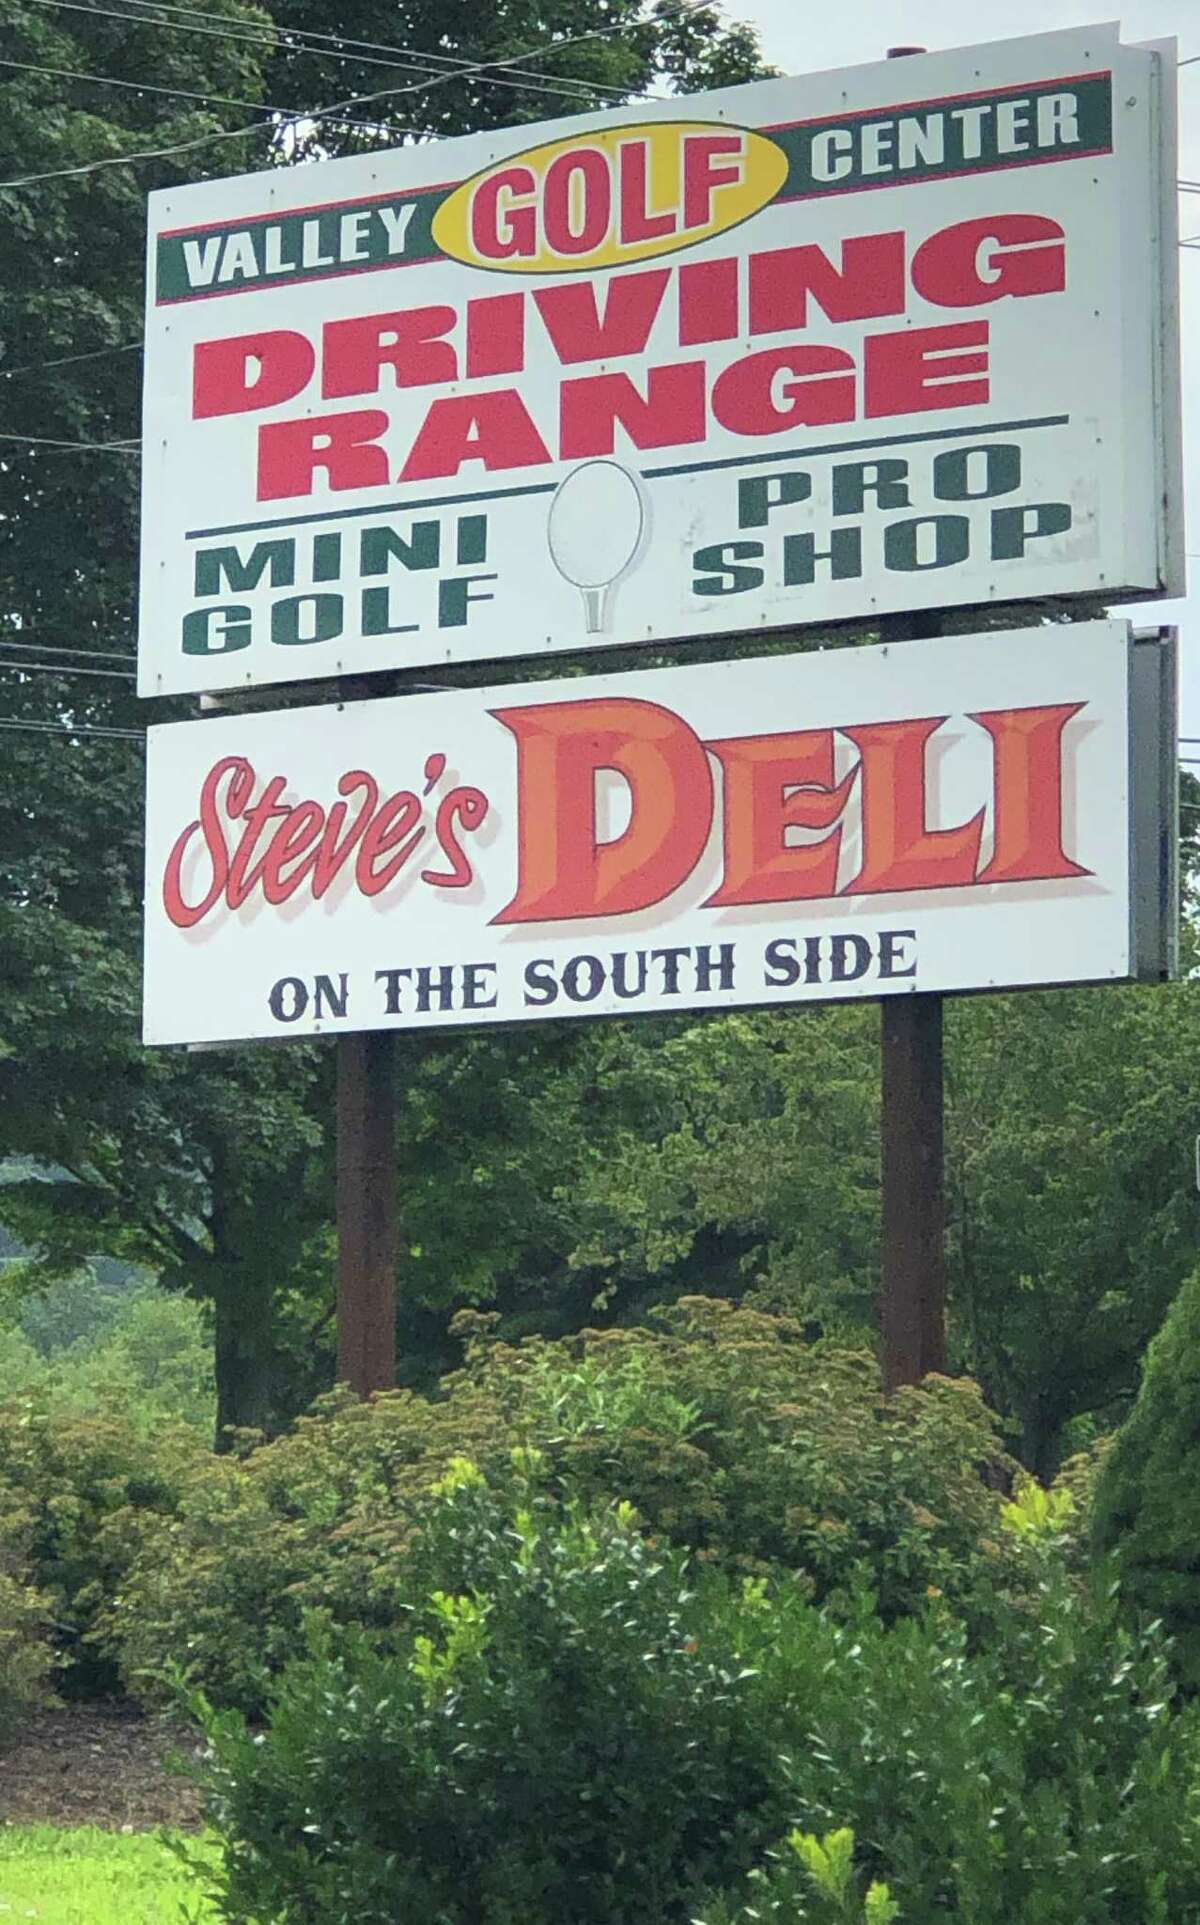 Steve's Deli is located at 562 Danbury Road (Route 7 South) in New Milford.